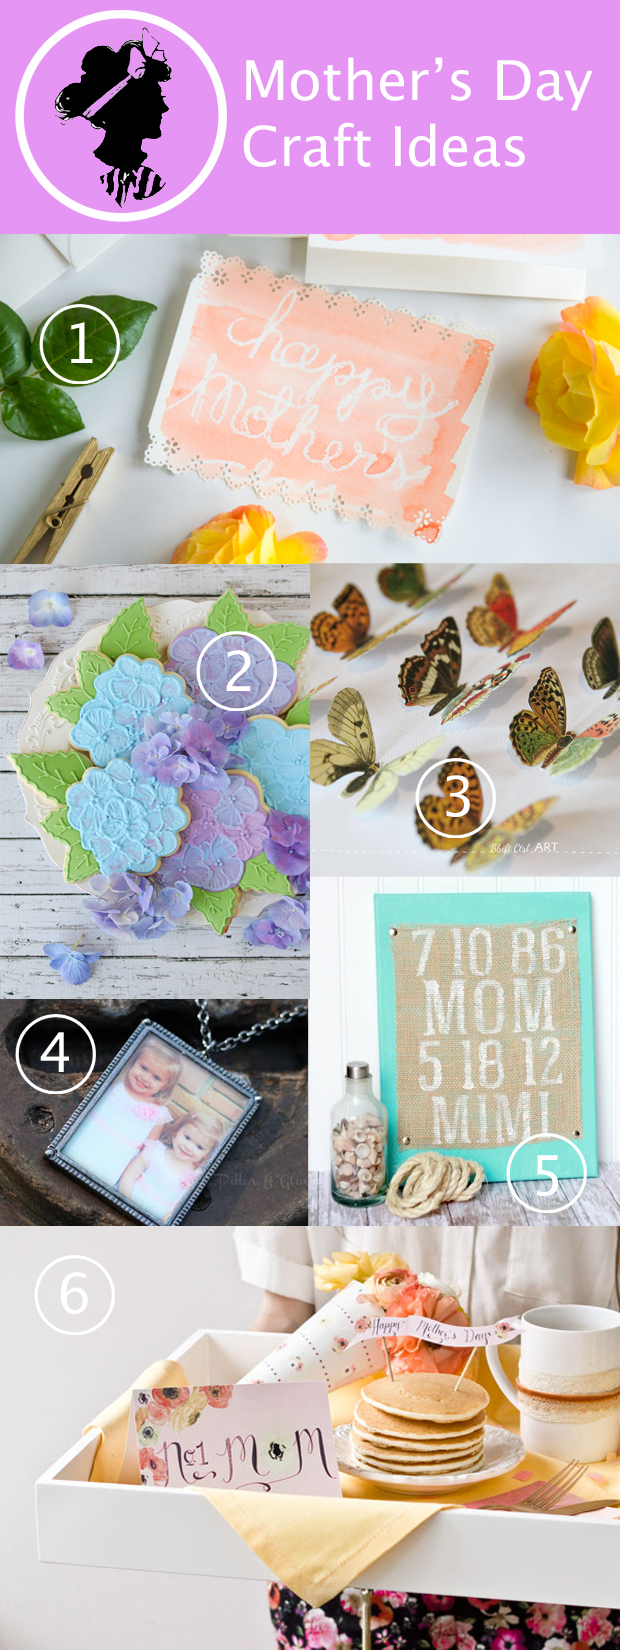 The Best Mother's Day Ideas via HandsOccupied.com